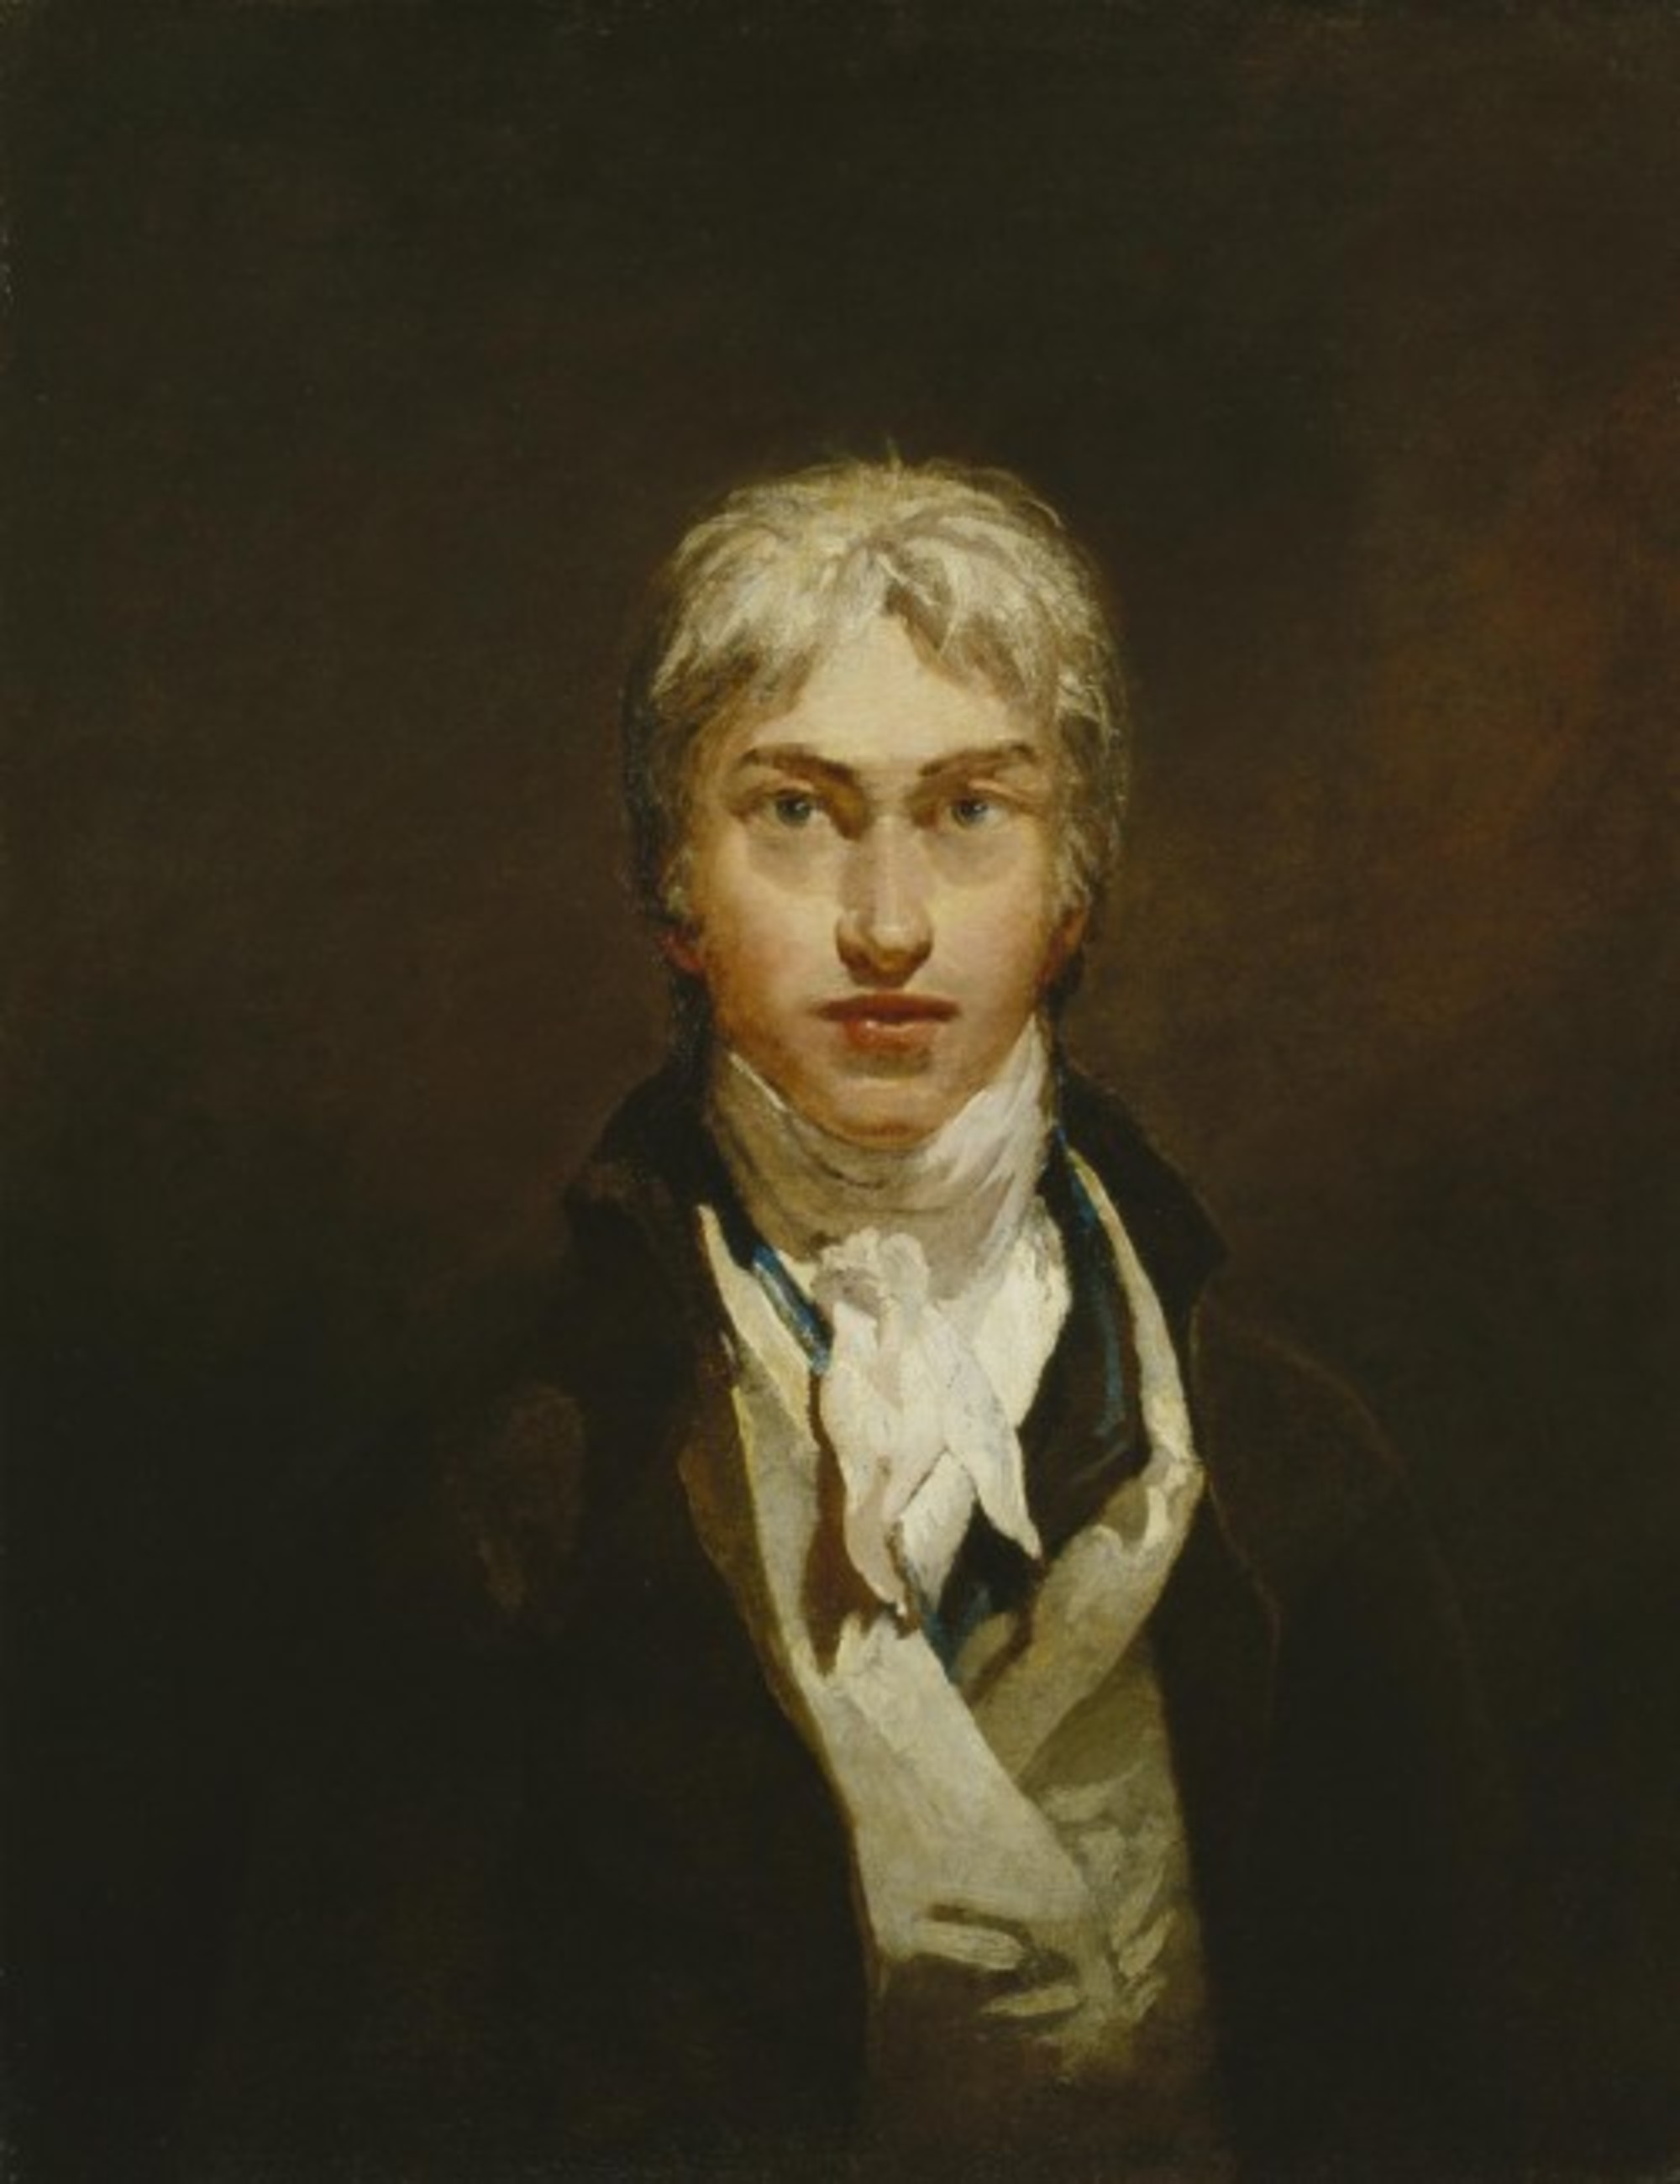 Joseph_Mallord_William_Turner_Self_Portrait_1799.jpg